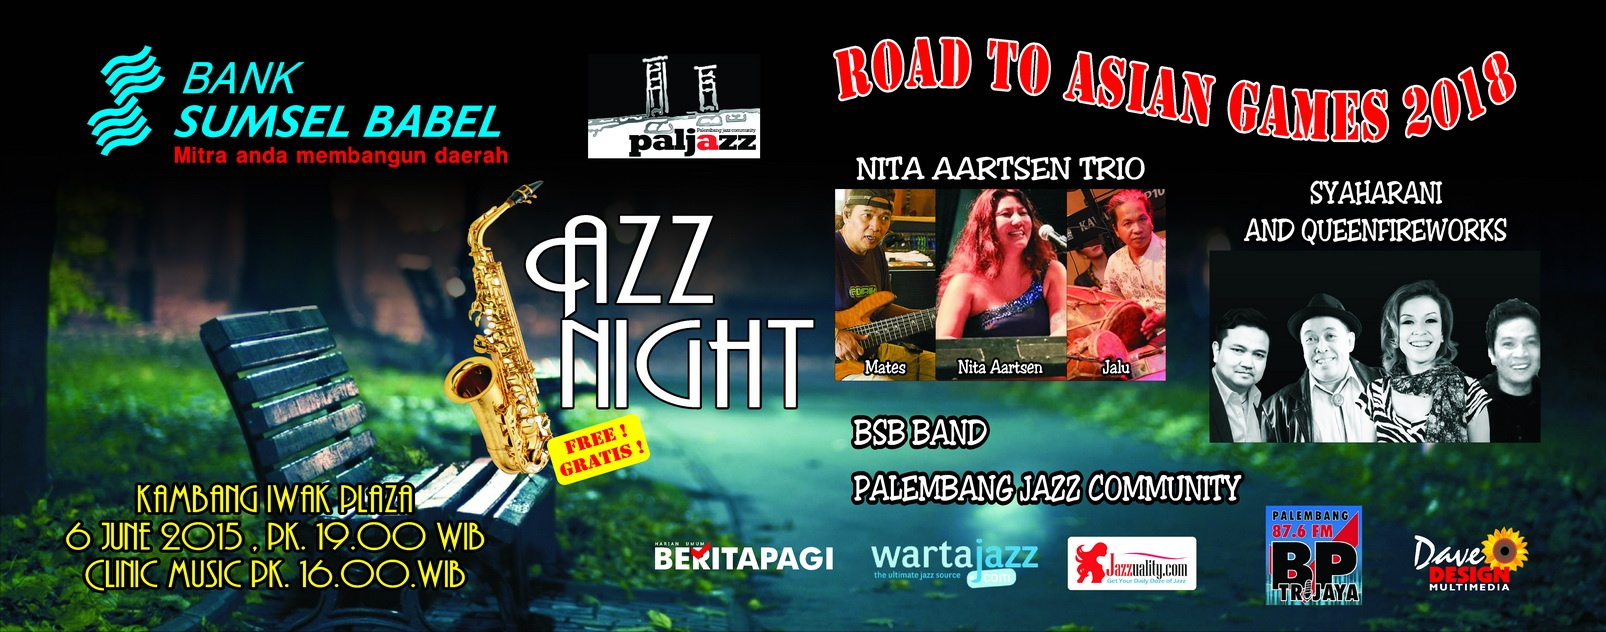 Photo of Palembang Jazz Community Gelar Jazz Night Bersama Syaharani dan Nita Aartsen